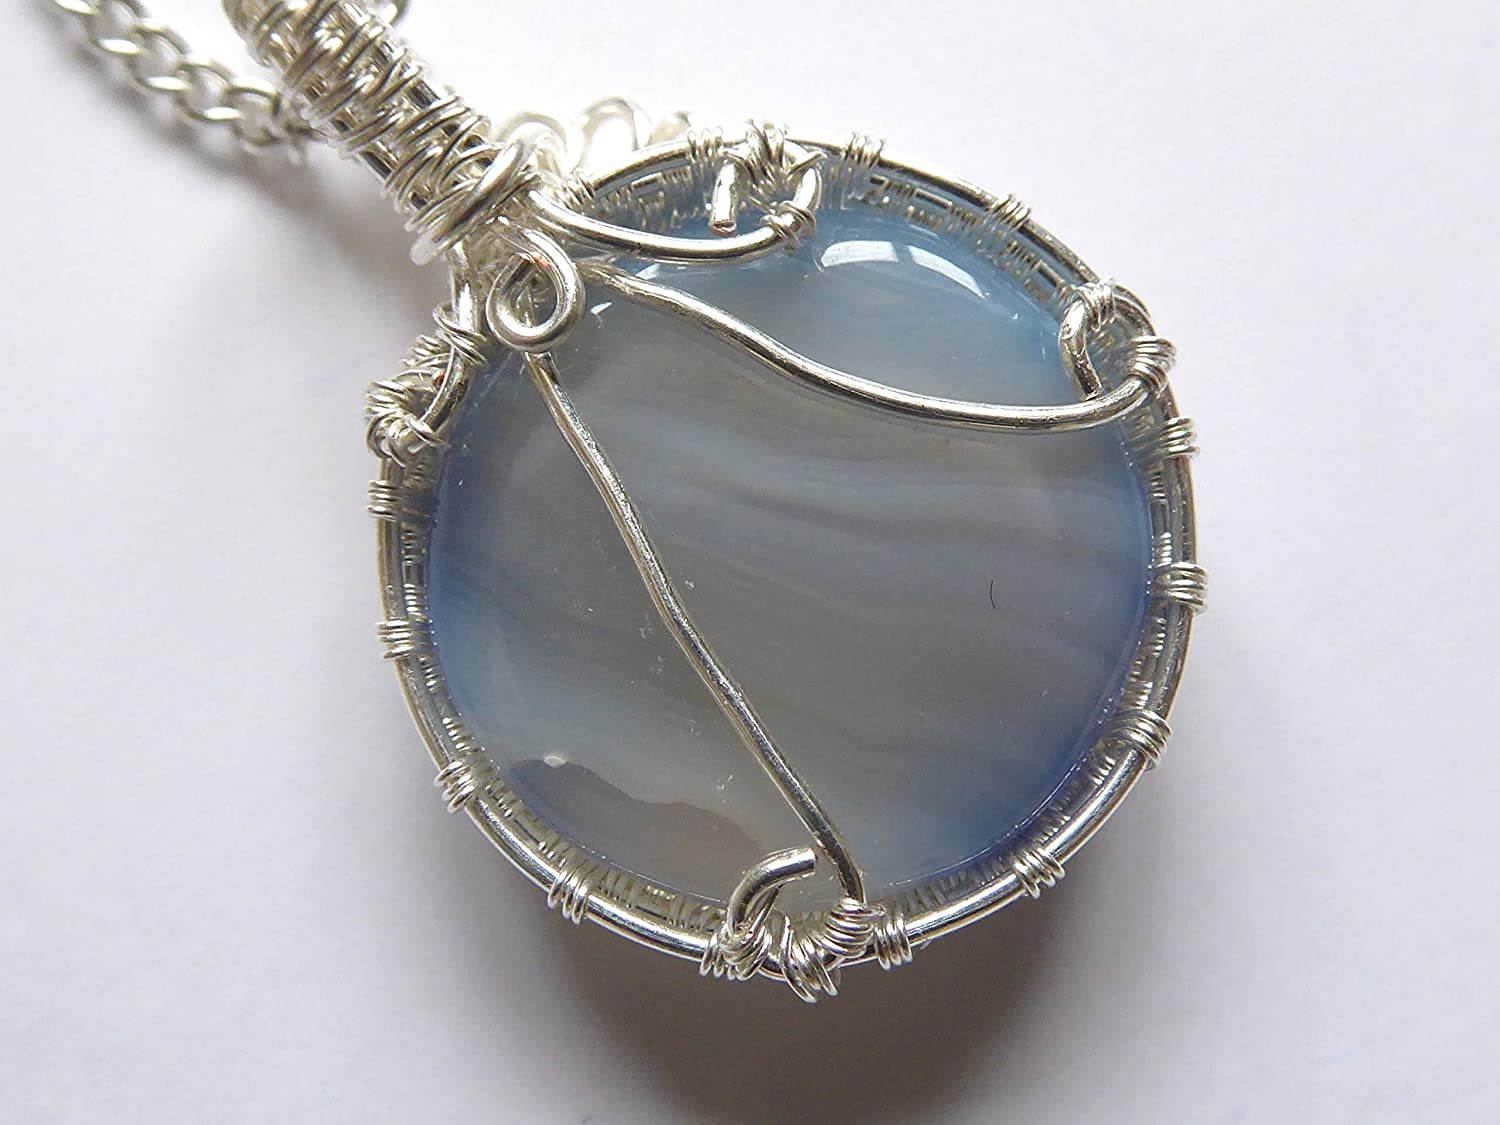 Agate Silver Filled Handmade Pendant 18 Necklace Blue//Grey Wire Wrapped Natural Genuine Gemstone Real Gemstone Gift For Her Present